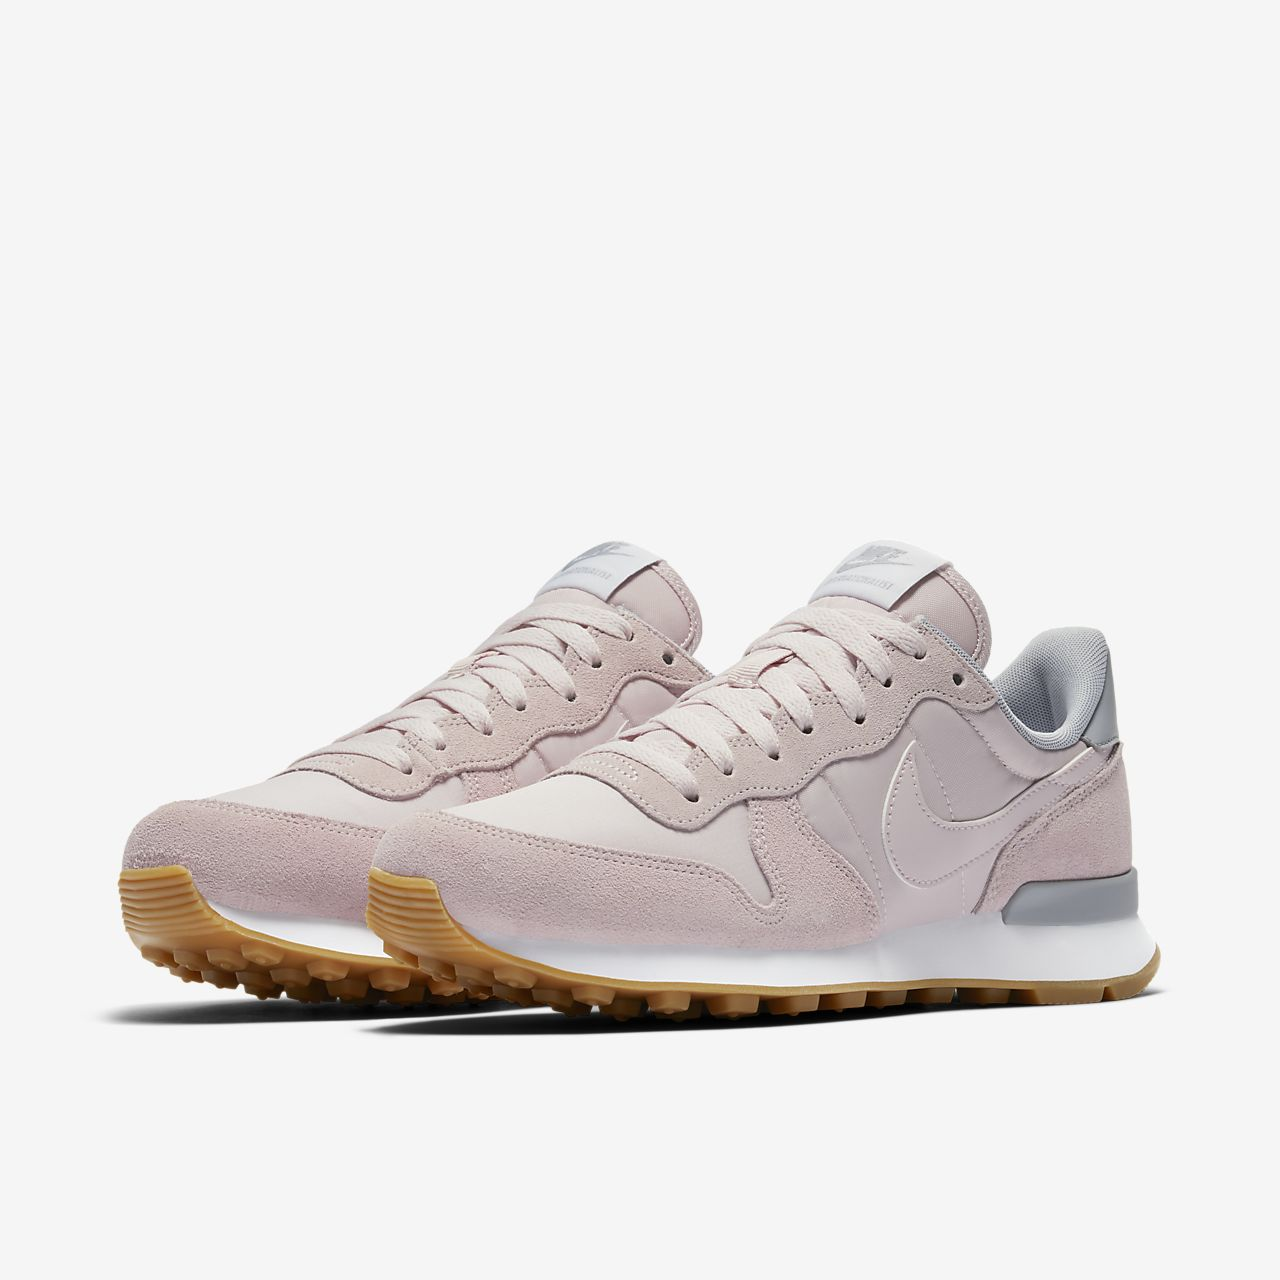 buy popular f1019 19d3a Low Resolution Nike Internationalist Womens Shoe Nike Internationalist  Womens Shoe